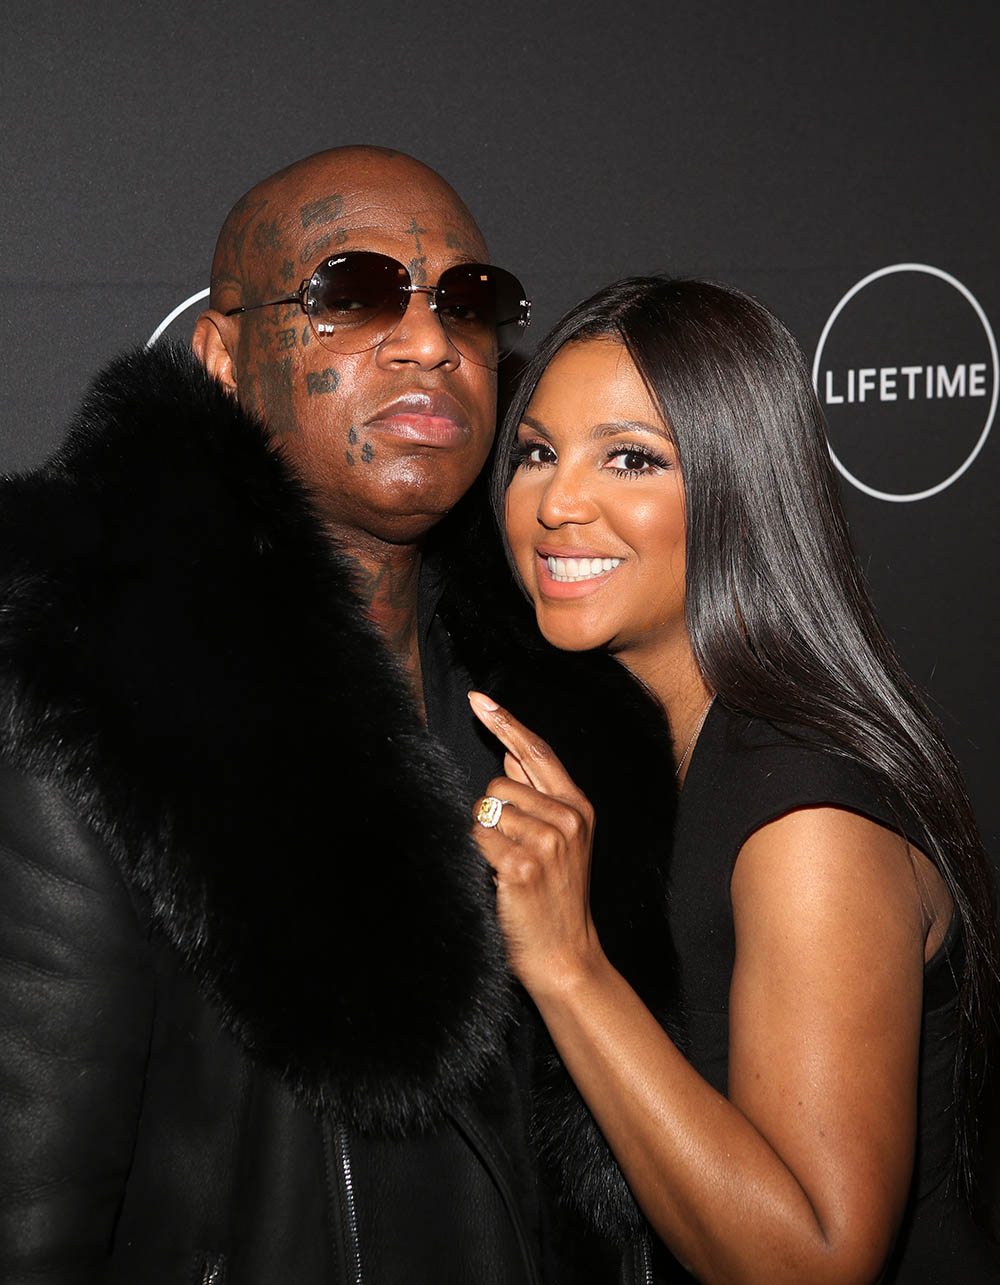 Toni Braxton and Birdman at Lifetime Premiere of Faith Under Fire